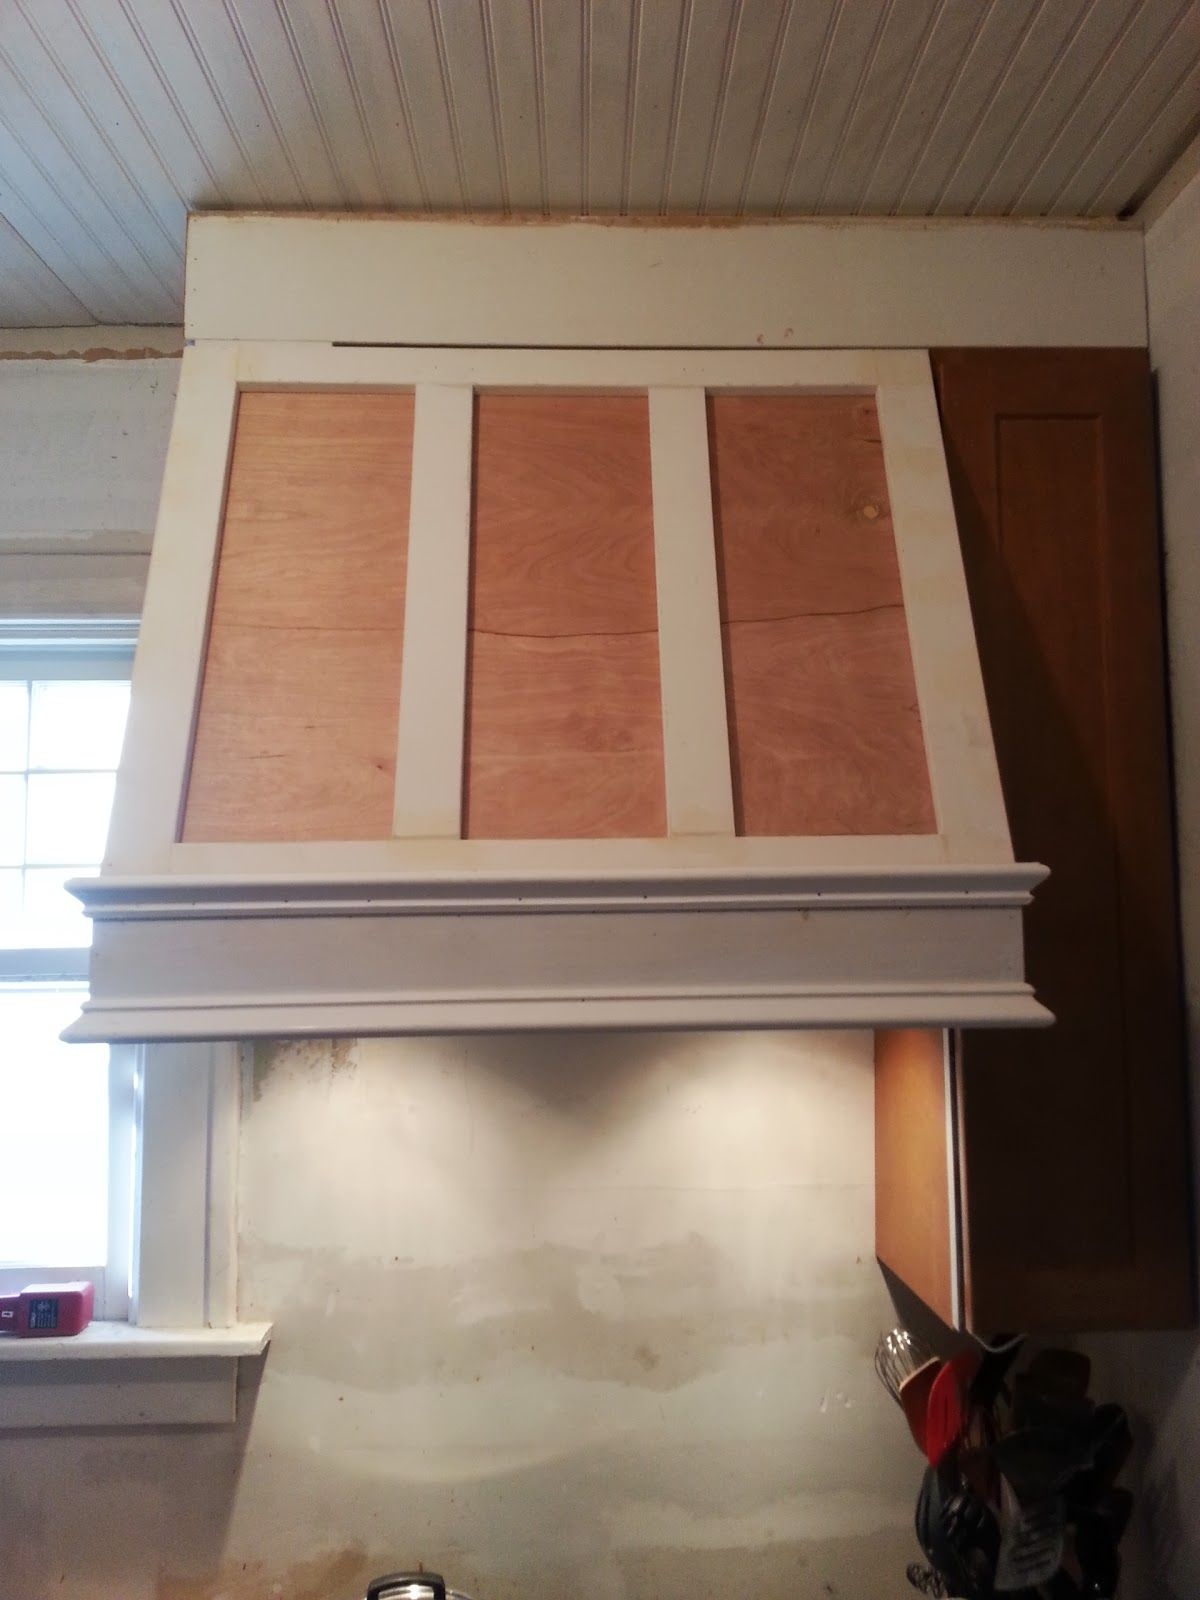 What style roof vent for range hood exhaust - Confessions Of A Diy Aholic How To Build A Shaker Style Range Hood Kitchen Vent Hoodkitchen